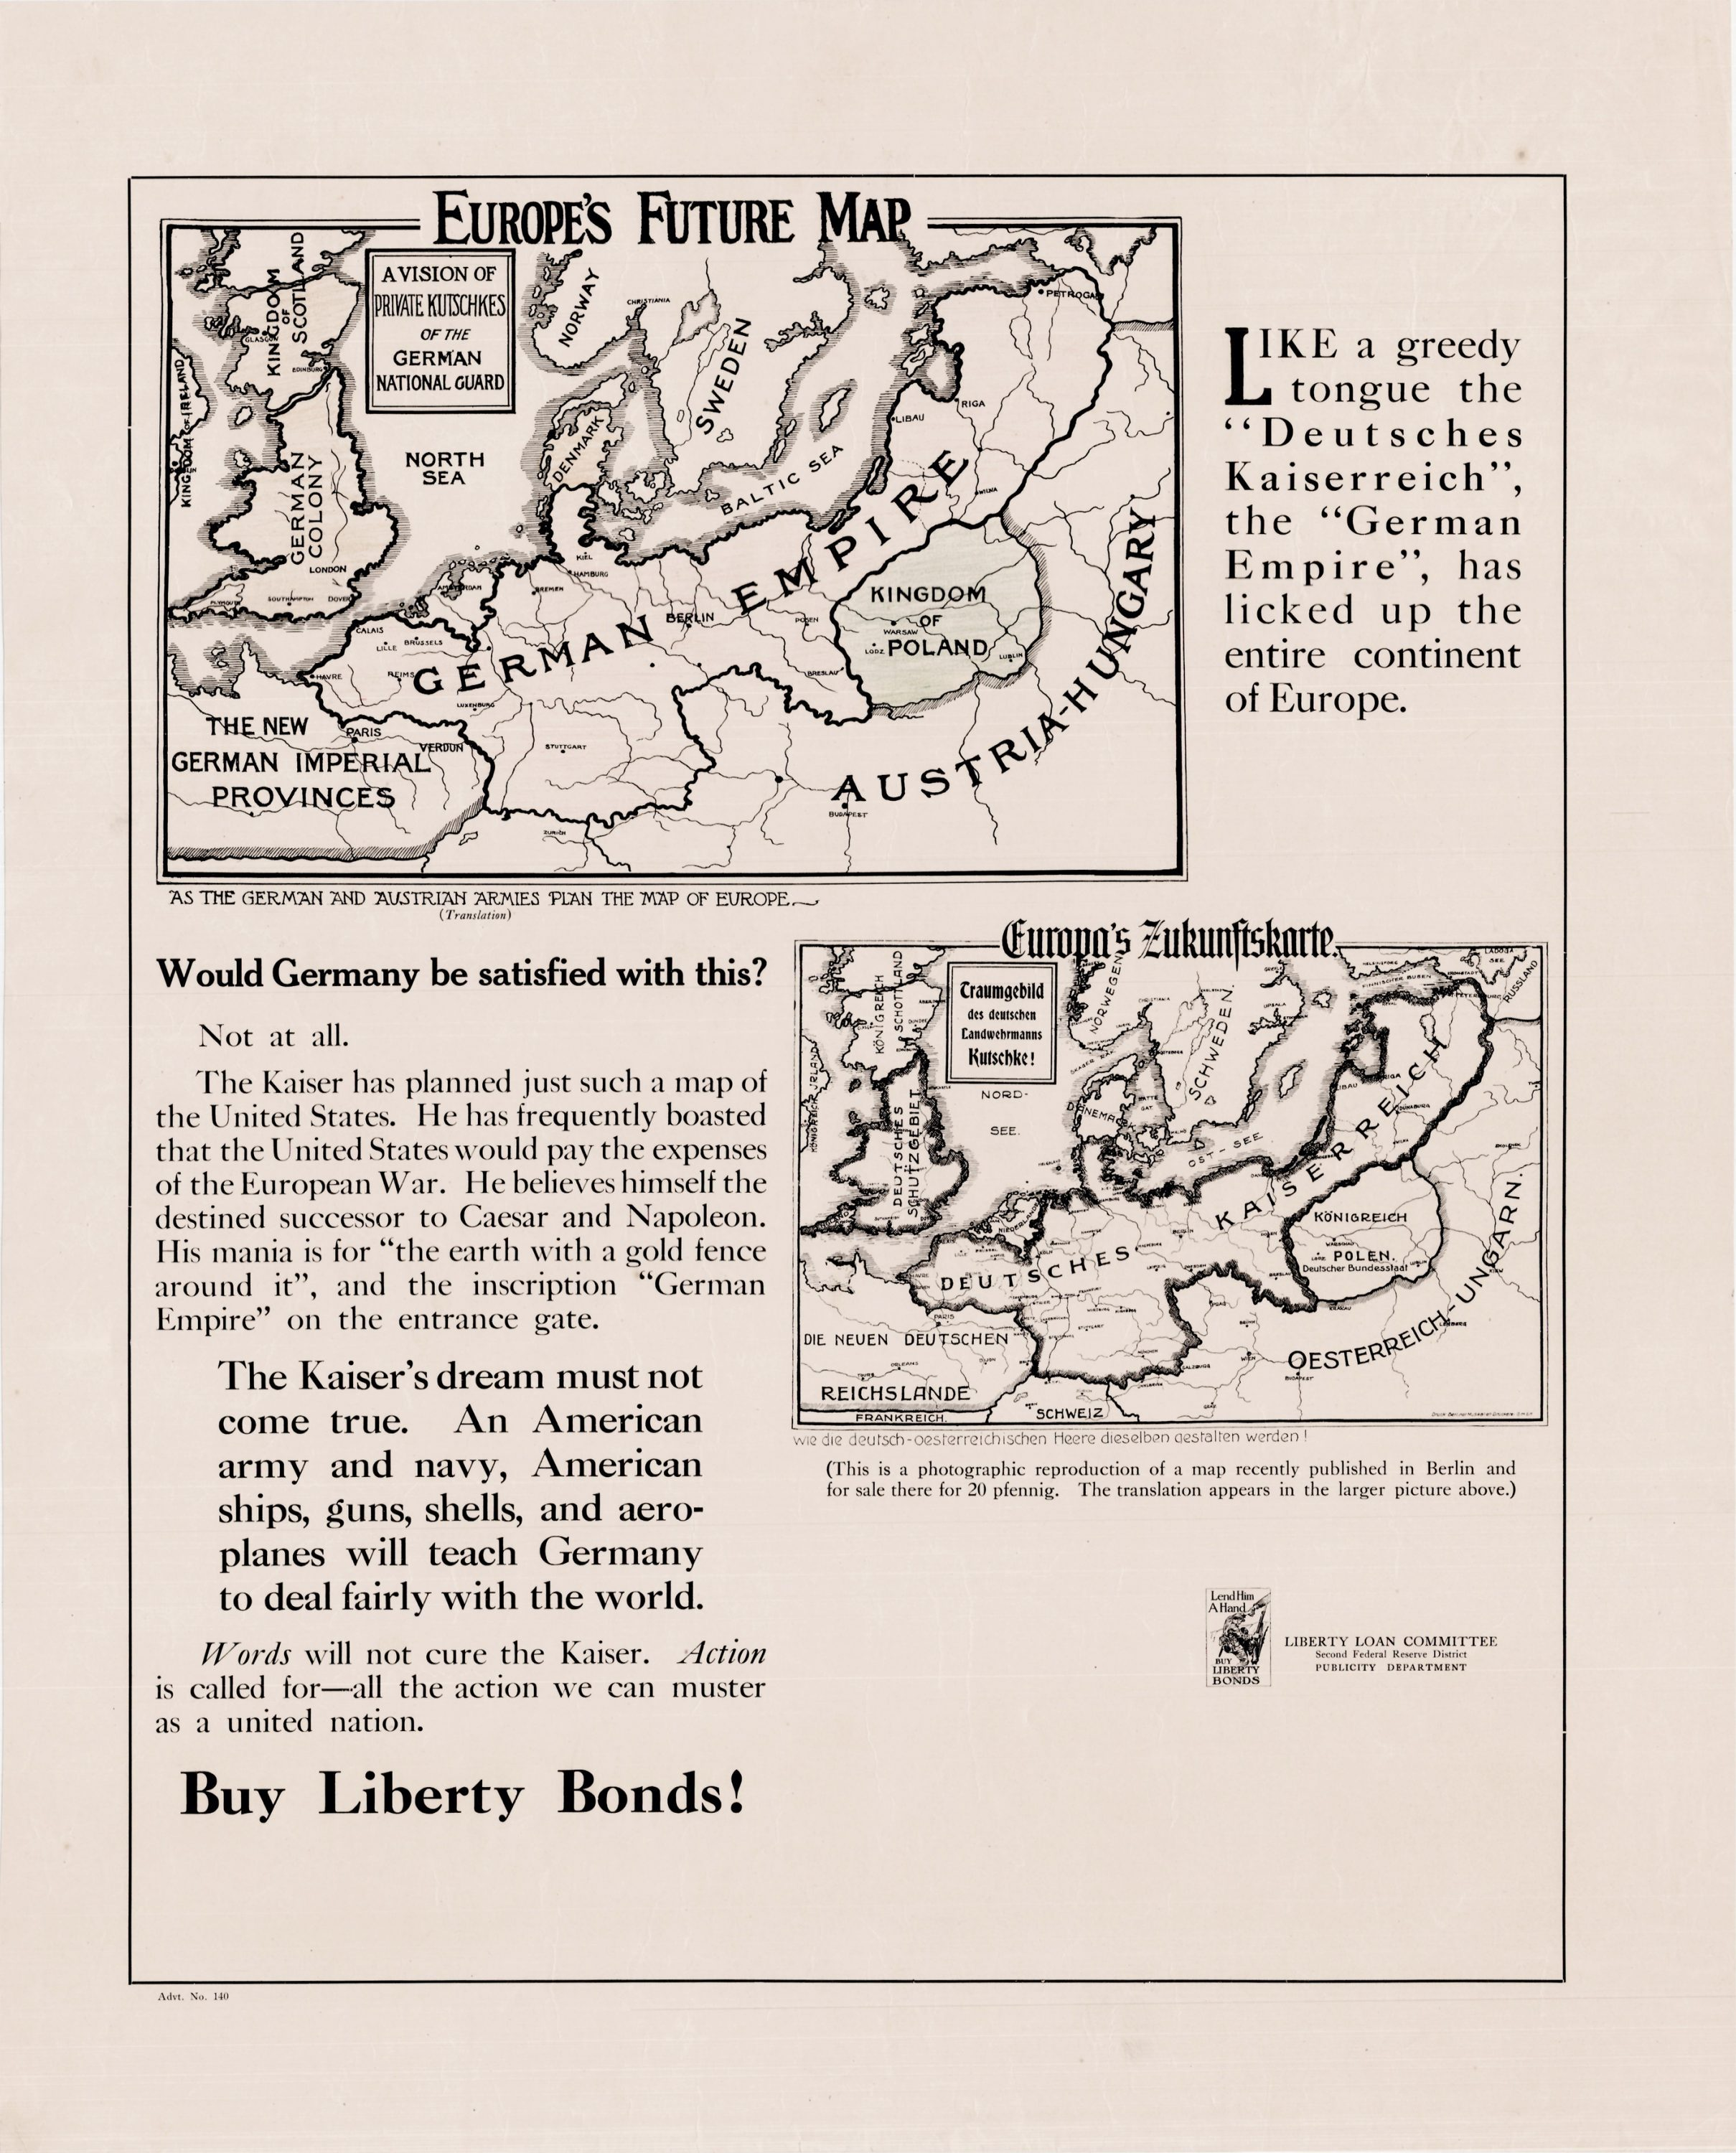 Map Of Europe For Sale.Europe S Future Map Helps Sell Liberty Bonds Rare Antique Maps